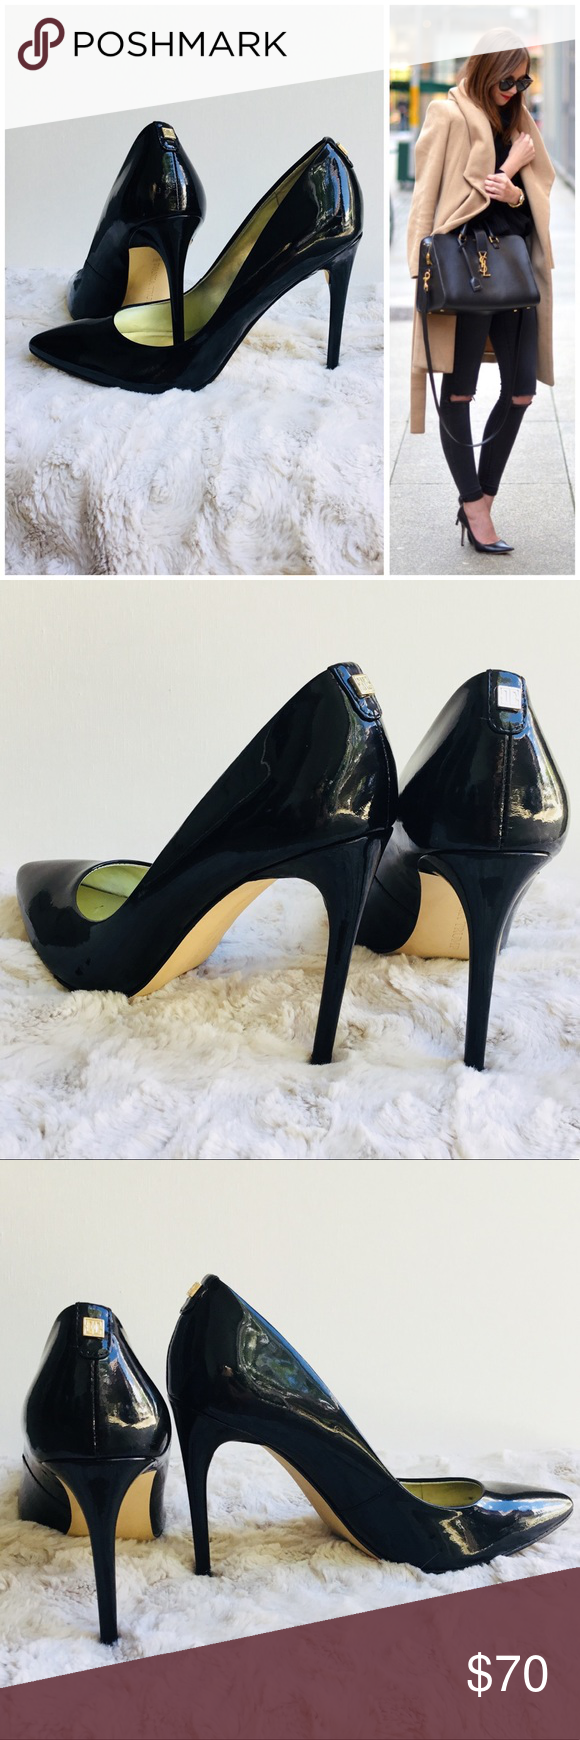 be3bee9c05f Black Patent Leather stilettos EUC! Ivanka Trump stilettos. Shows very  light wear. Sexy   classic! 4 in heel.  All my shoes I sell receive 5 stars  so you ...